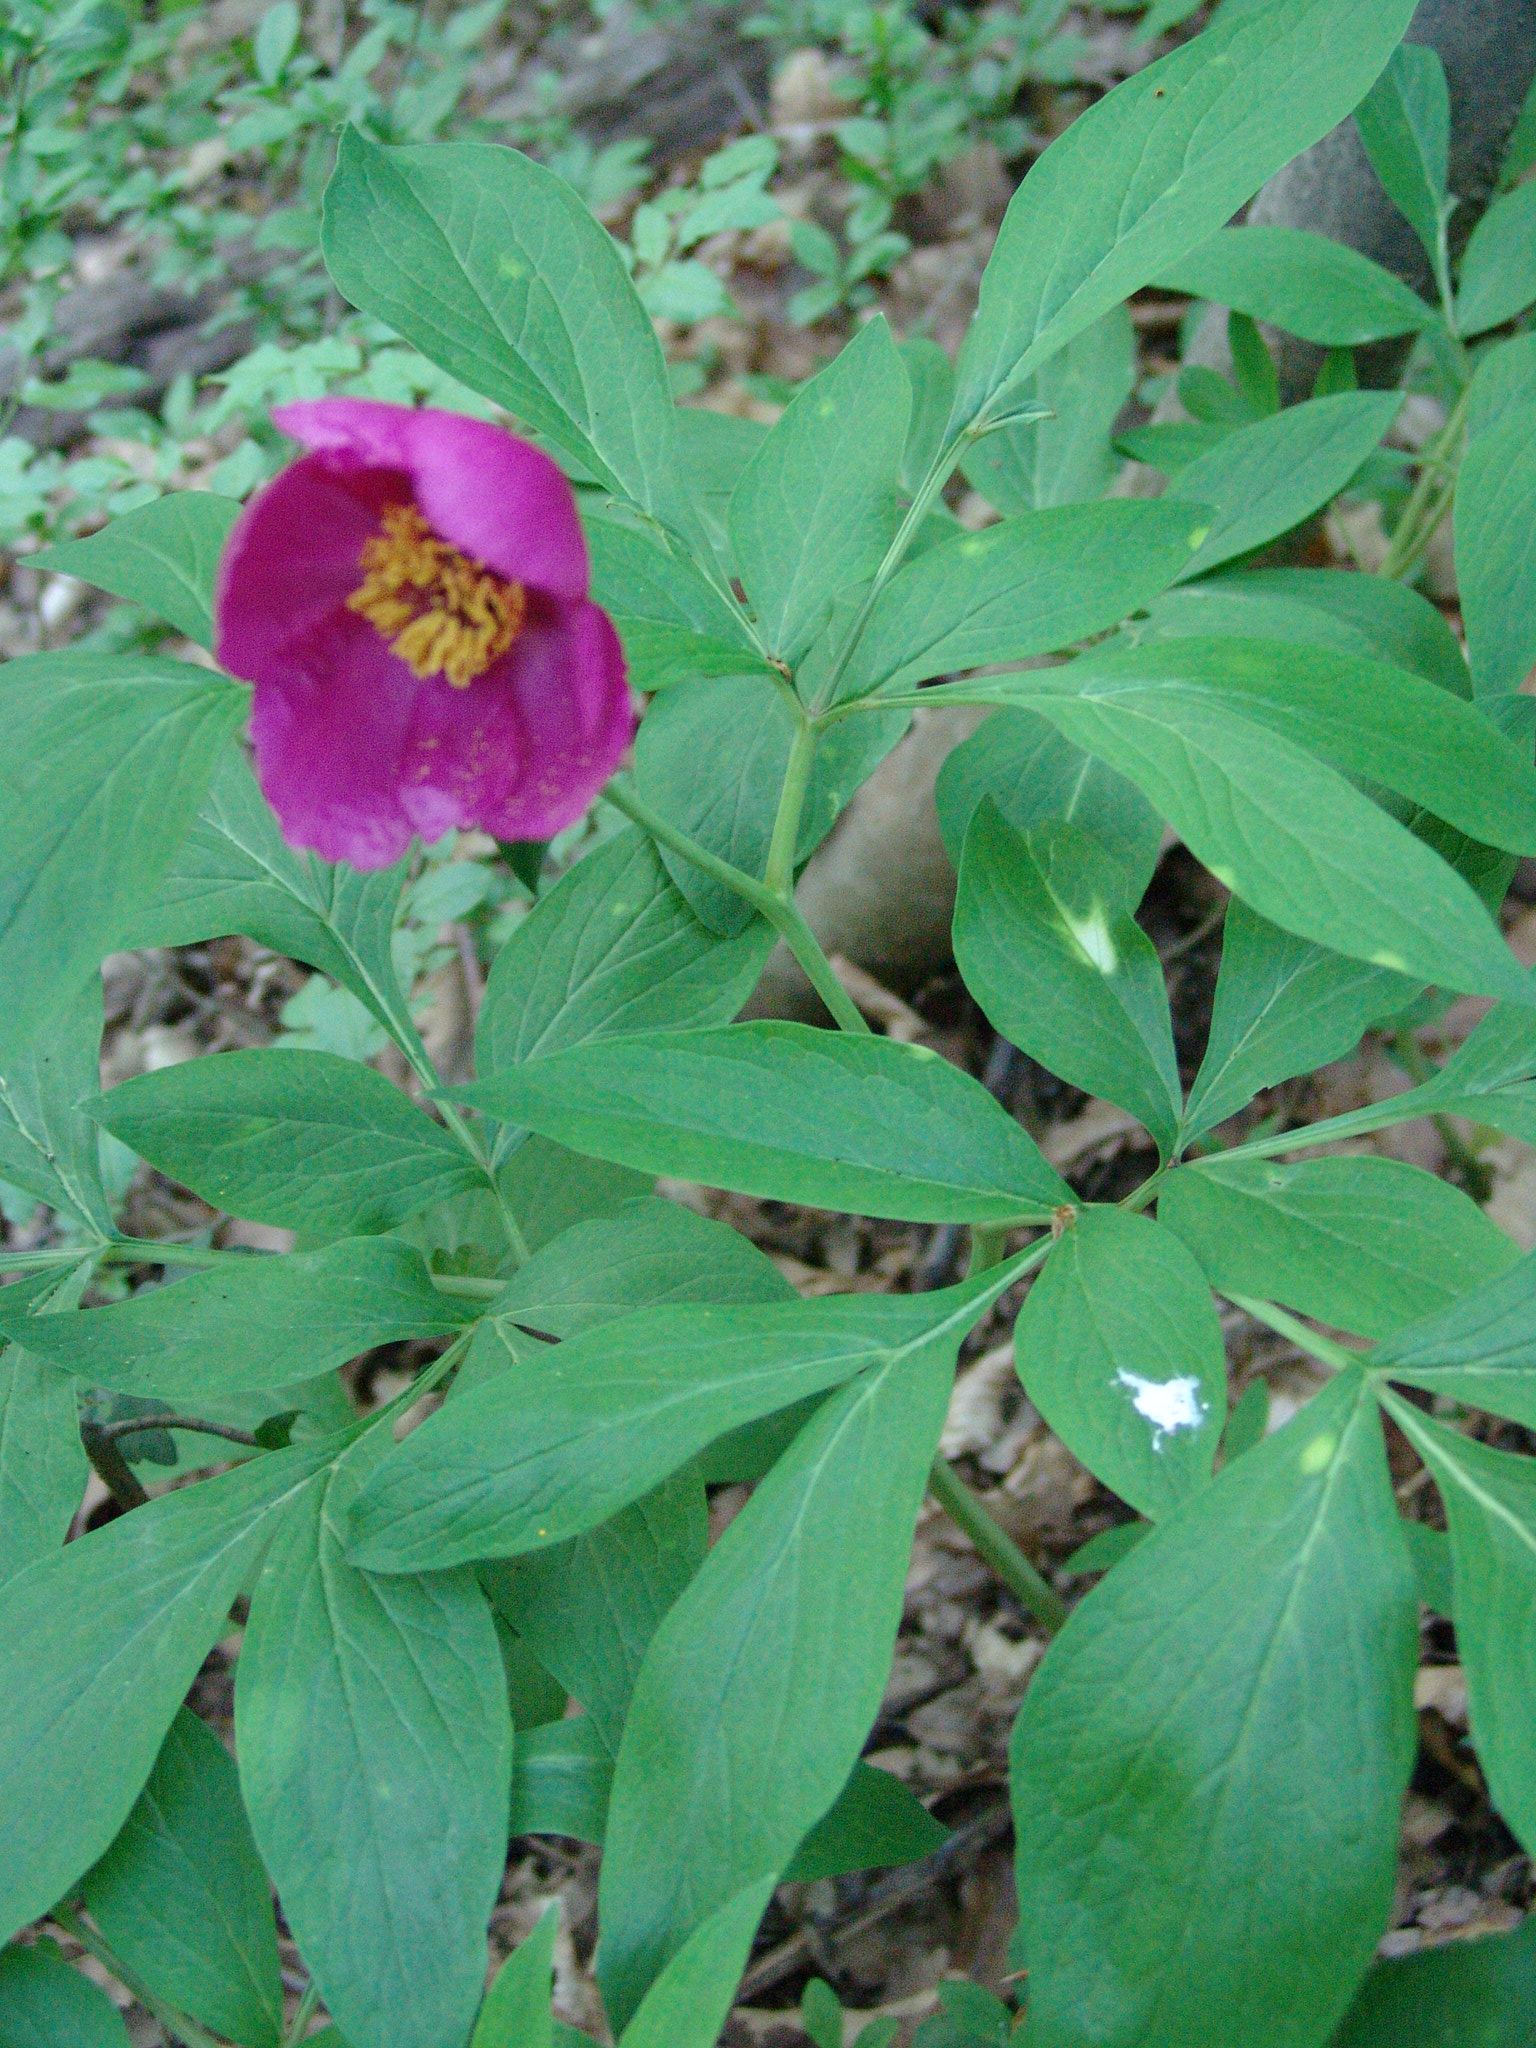 An endemic plant species in the Carpathian Basin: Paeonia banatica photo by Gábor Varga